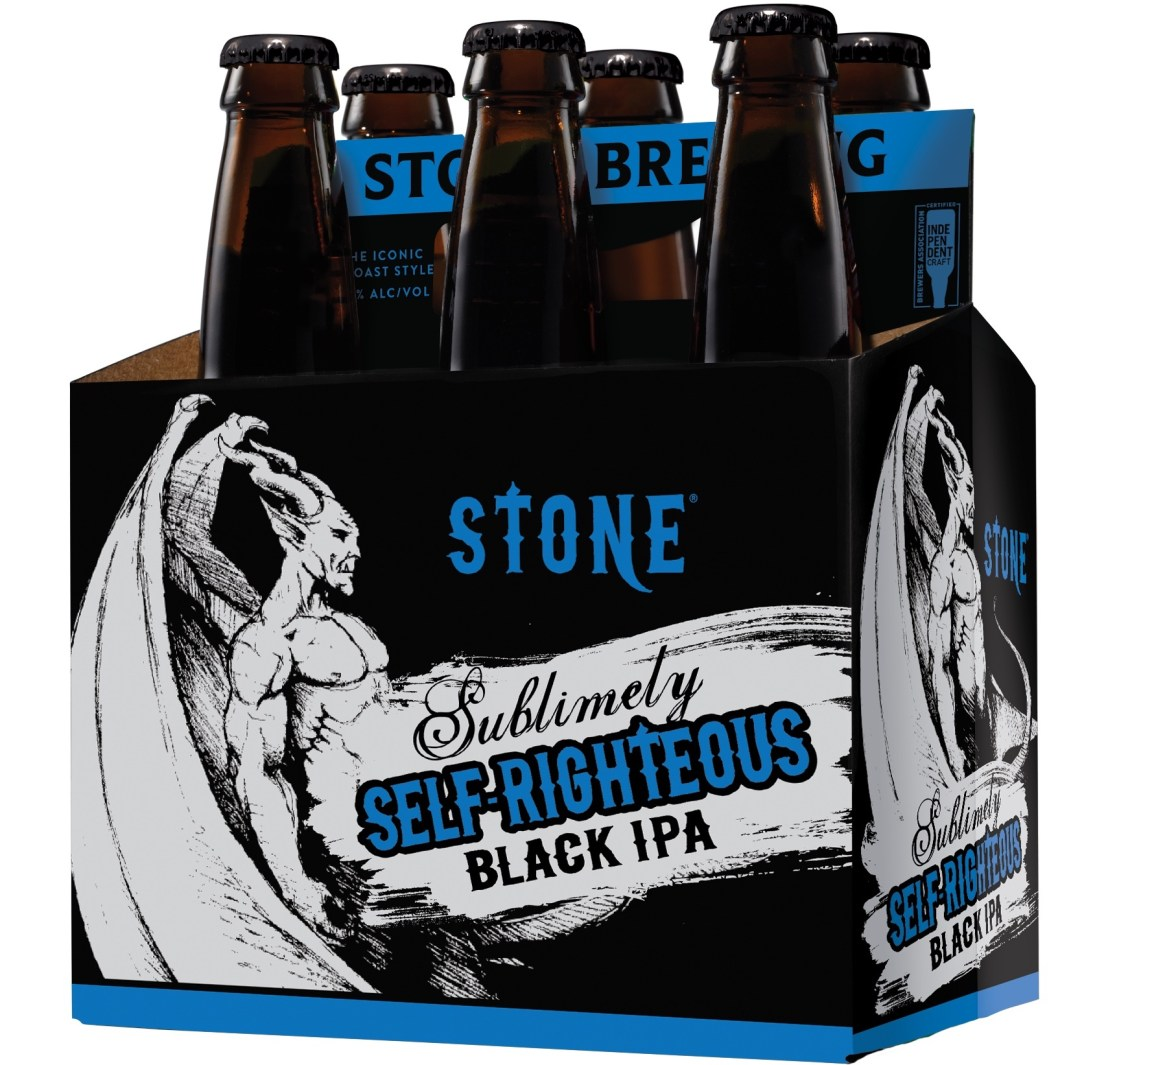 Stone Sublimely Self Righteous Black IPA 2020